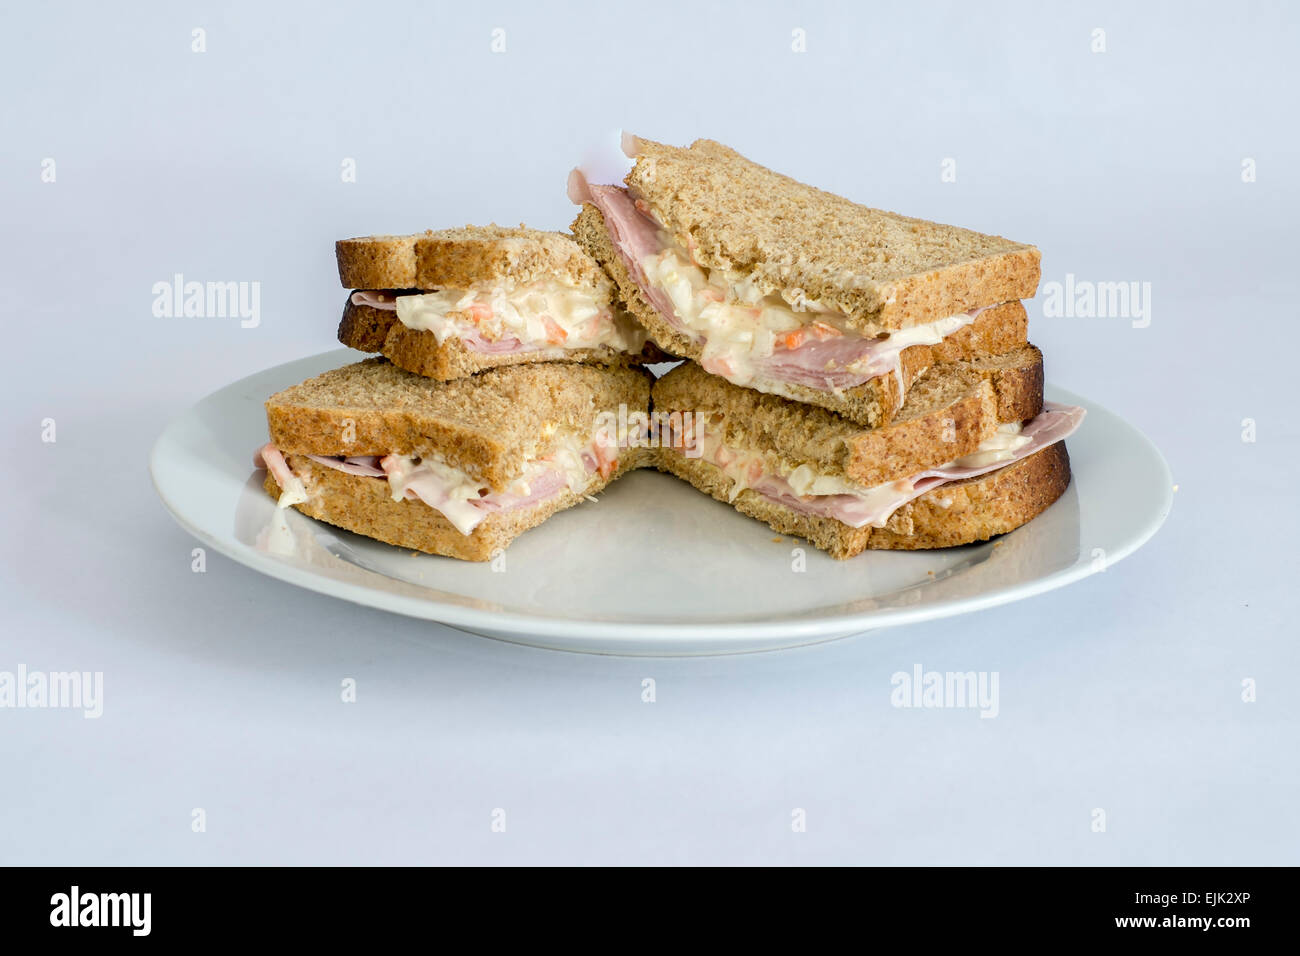 Ham & coleslaw sandwich on a white plate with white back ground - Stock Image